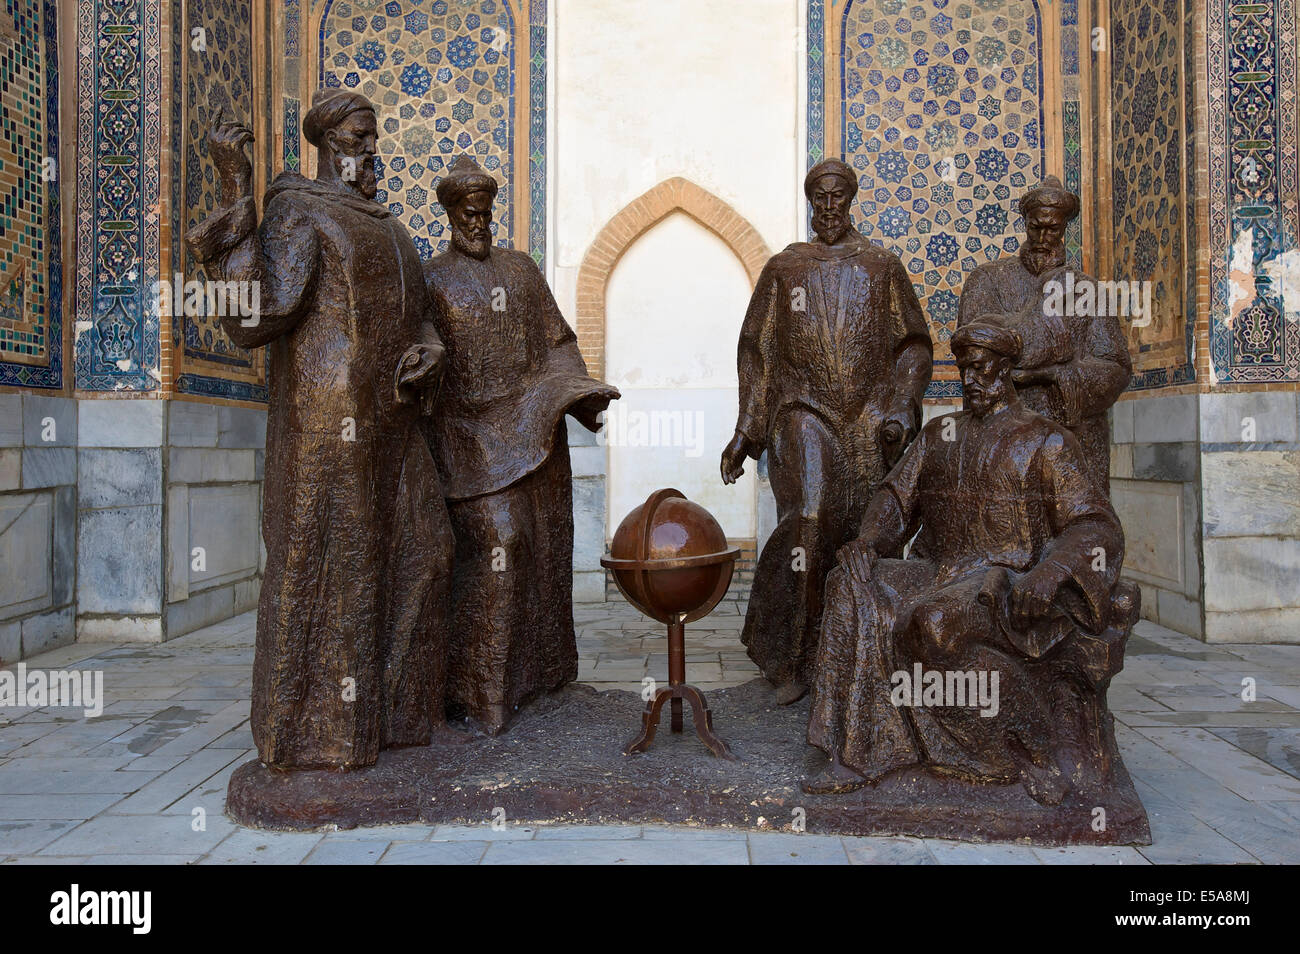 Ulugh Beg and other astronomers in a discussion, group of sculptures, Registan, Samarkand, Uzbekistan - Stock Image